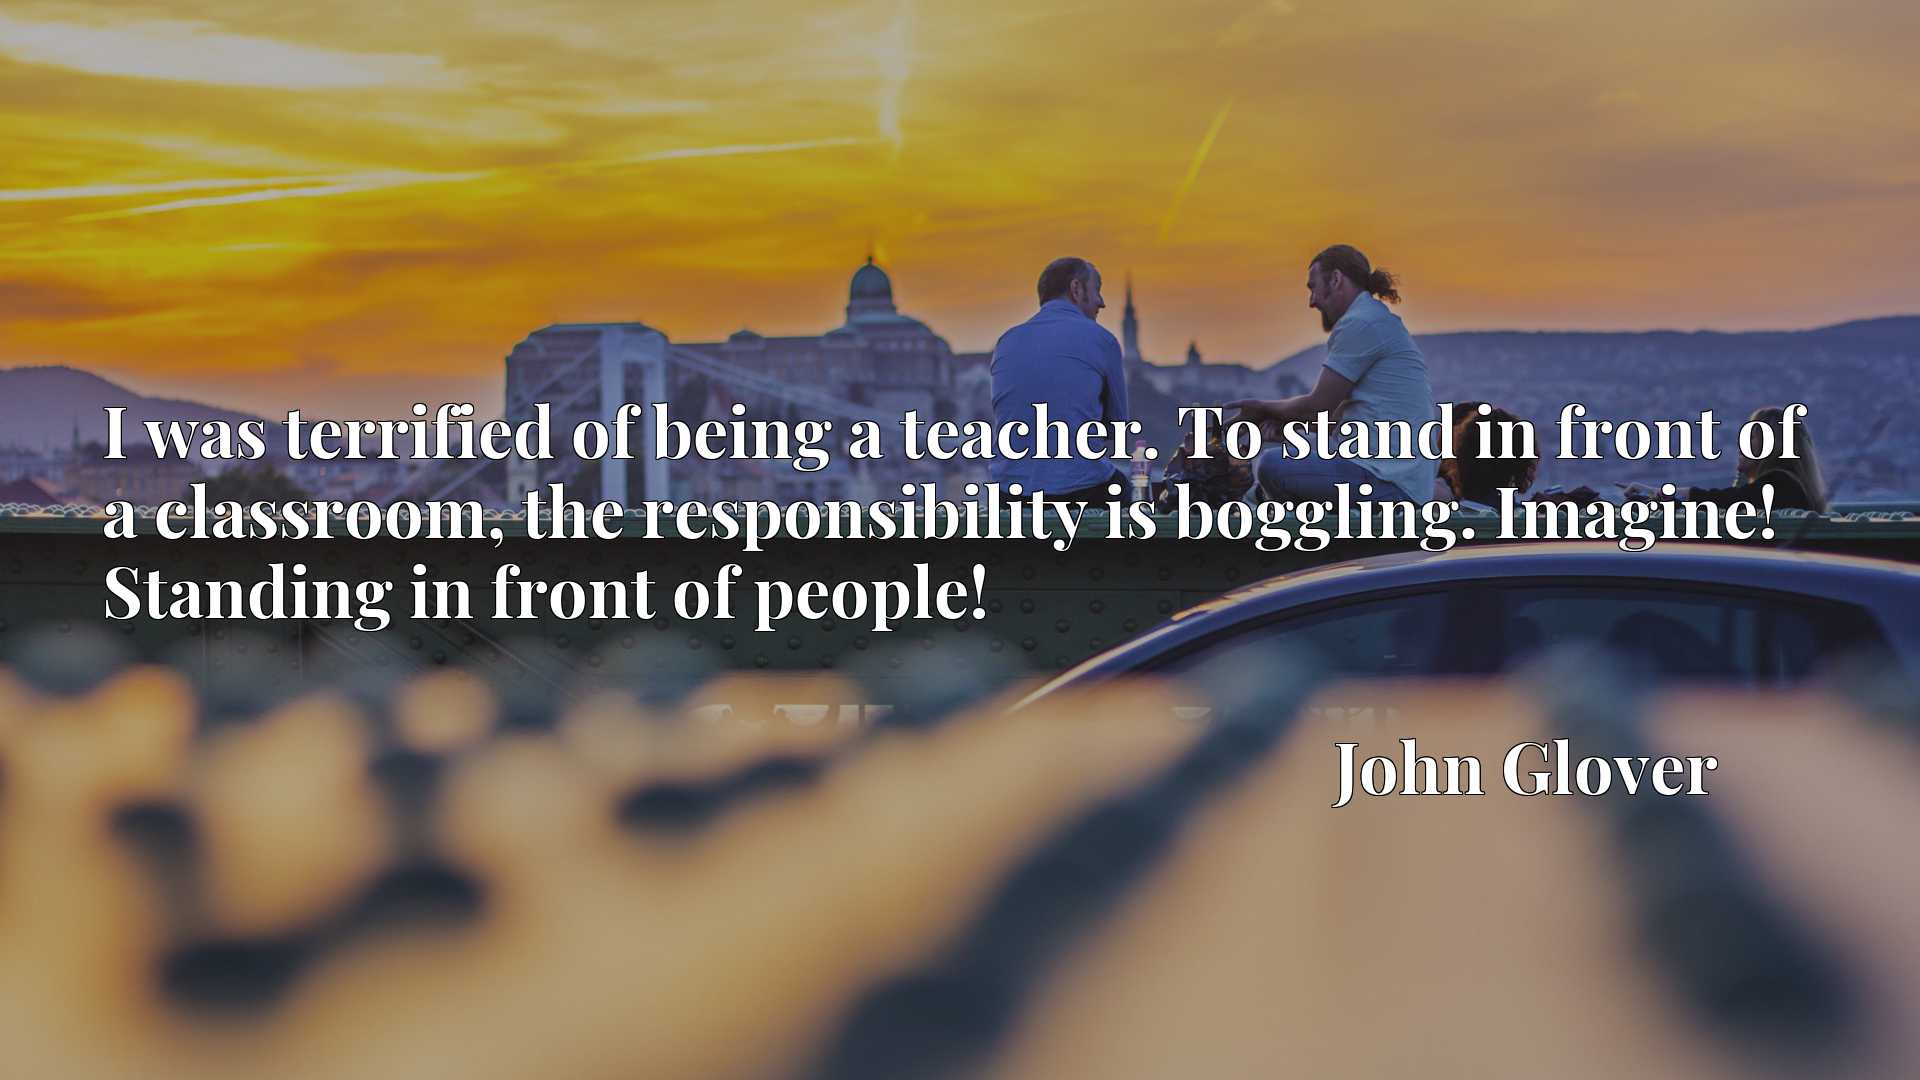 I was terrified of being a teacher. To stand in front of a classroom, the responsibility is boggling. Imagine! Standing in front of people!